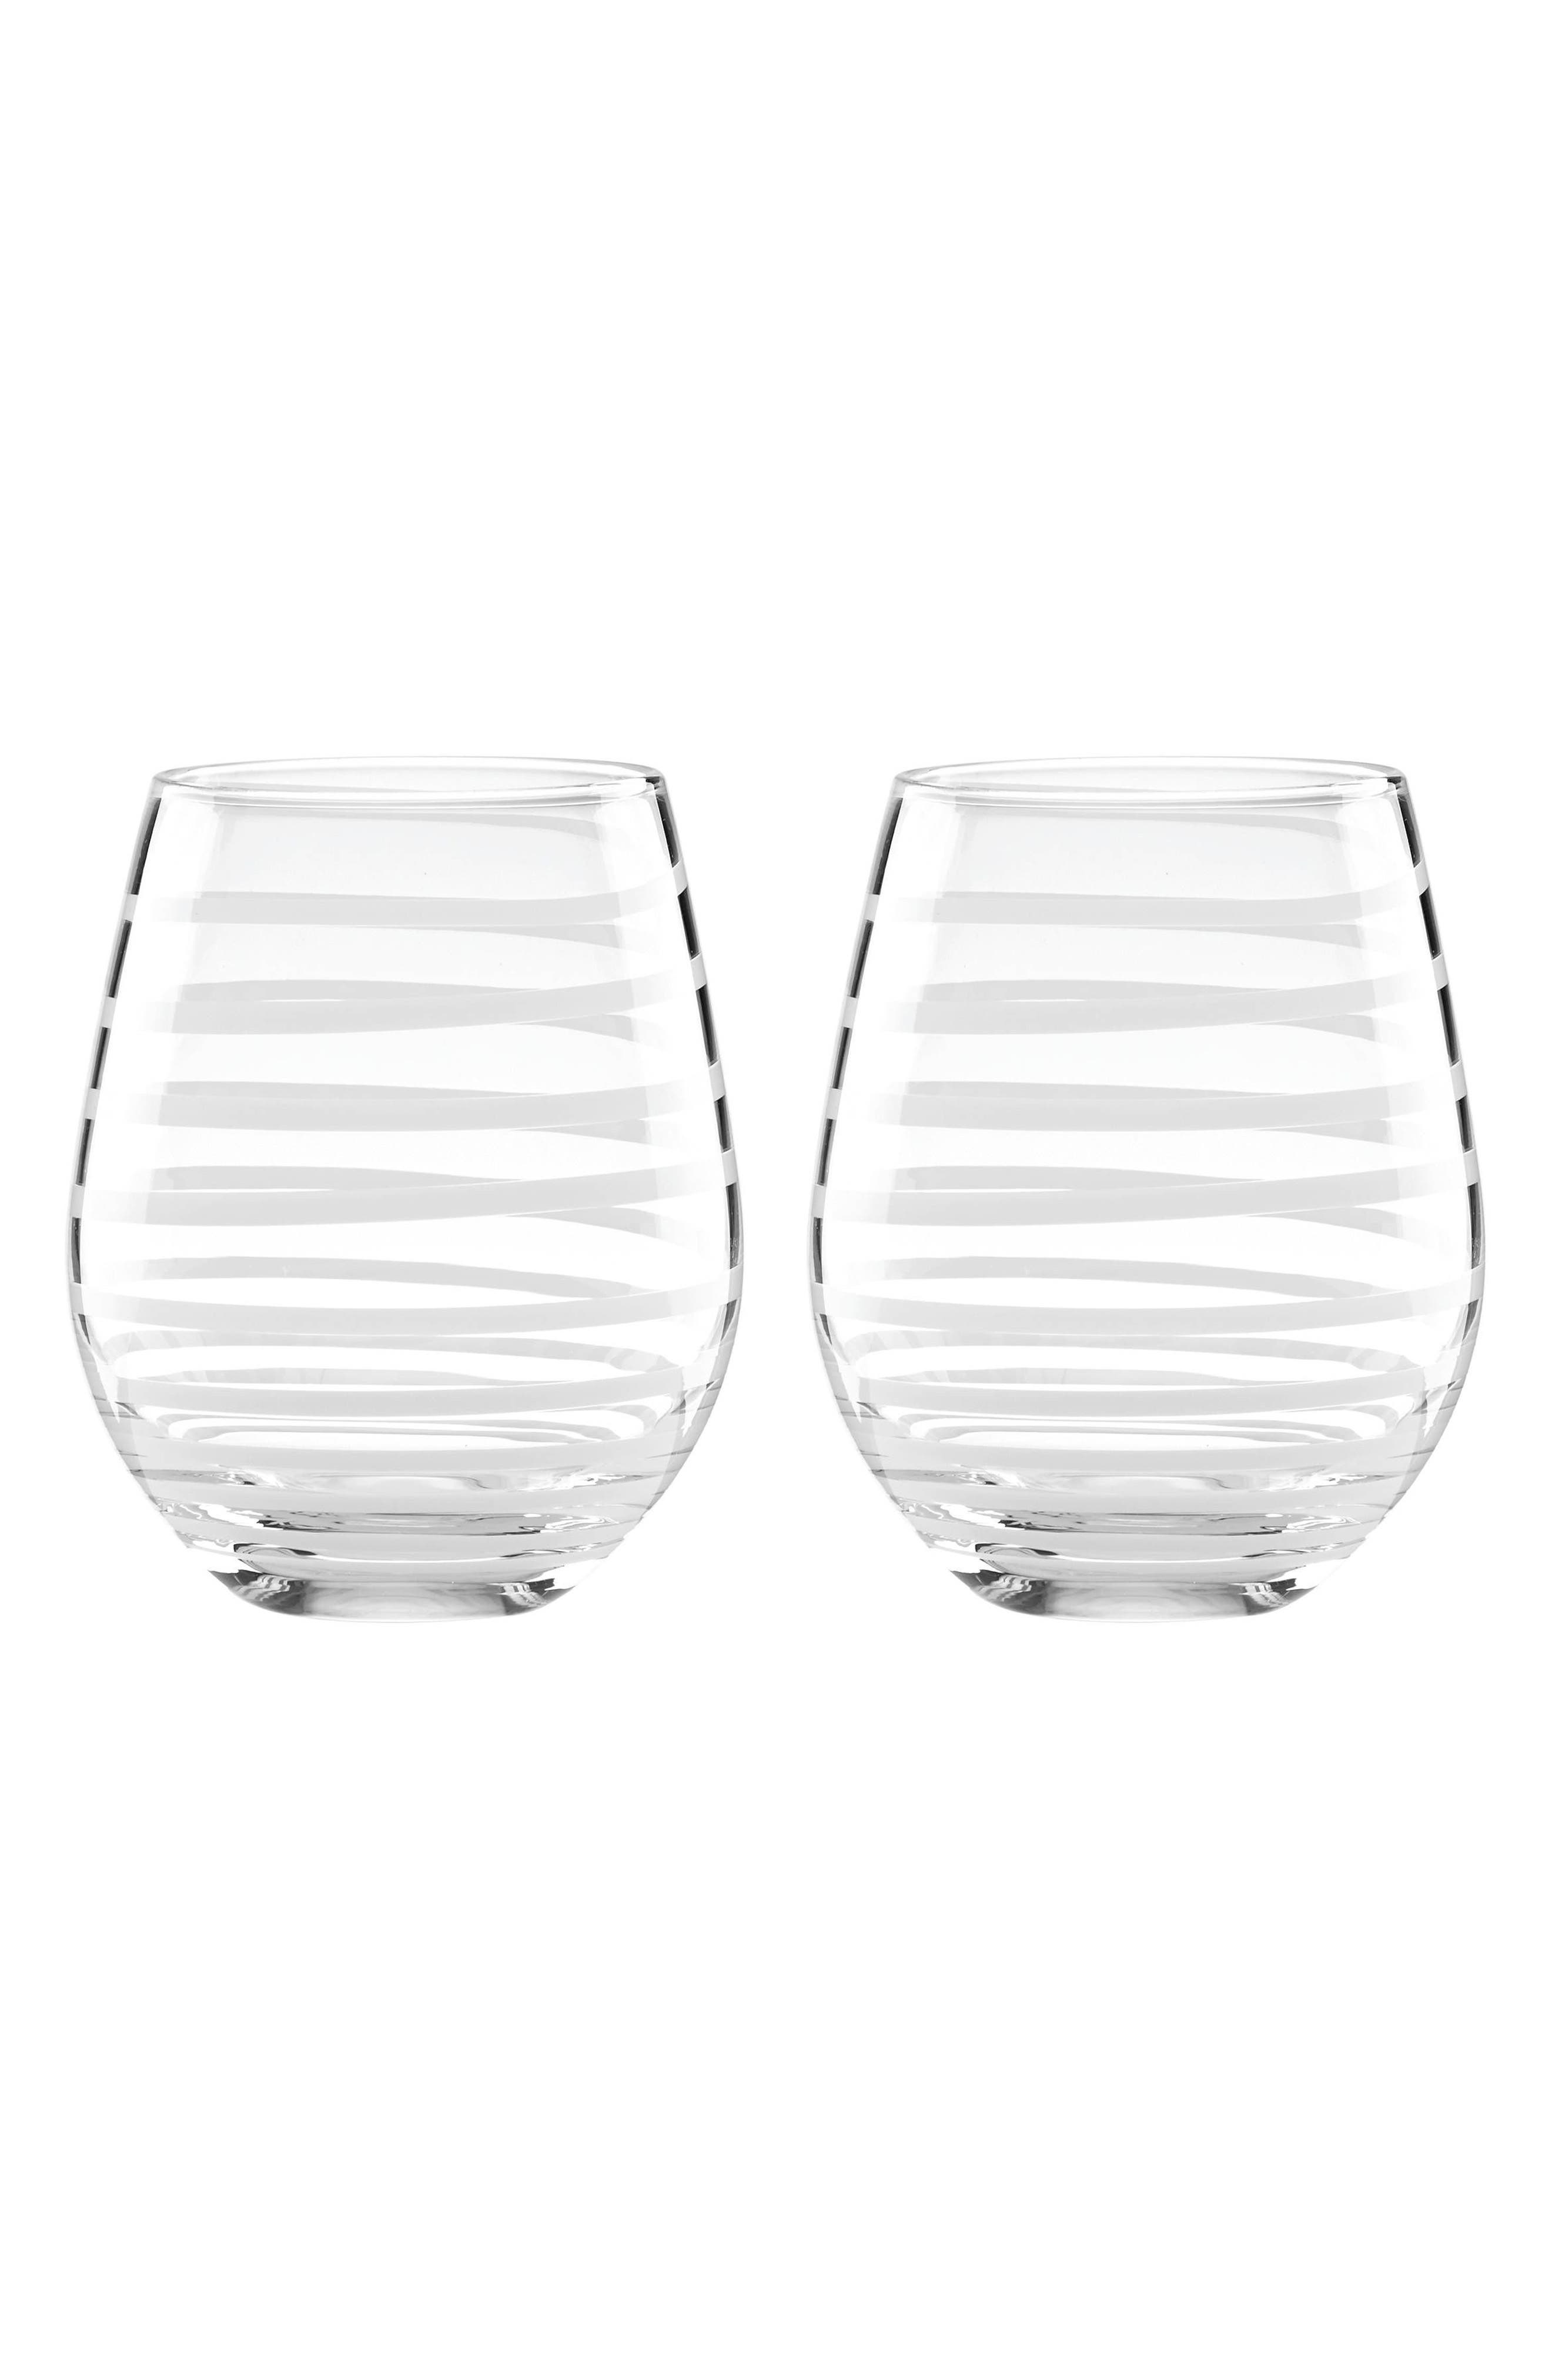 Main Image - kate spade new york set of 2 etched stemless wine glasses